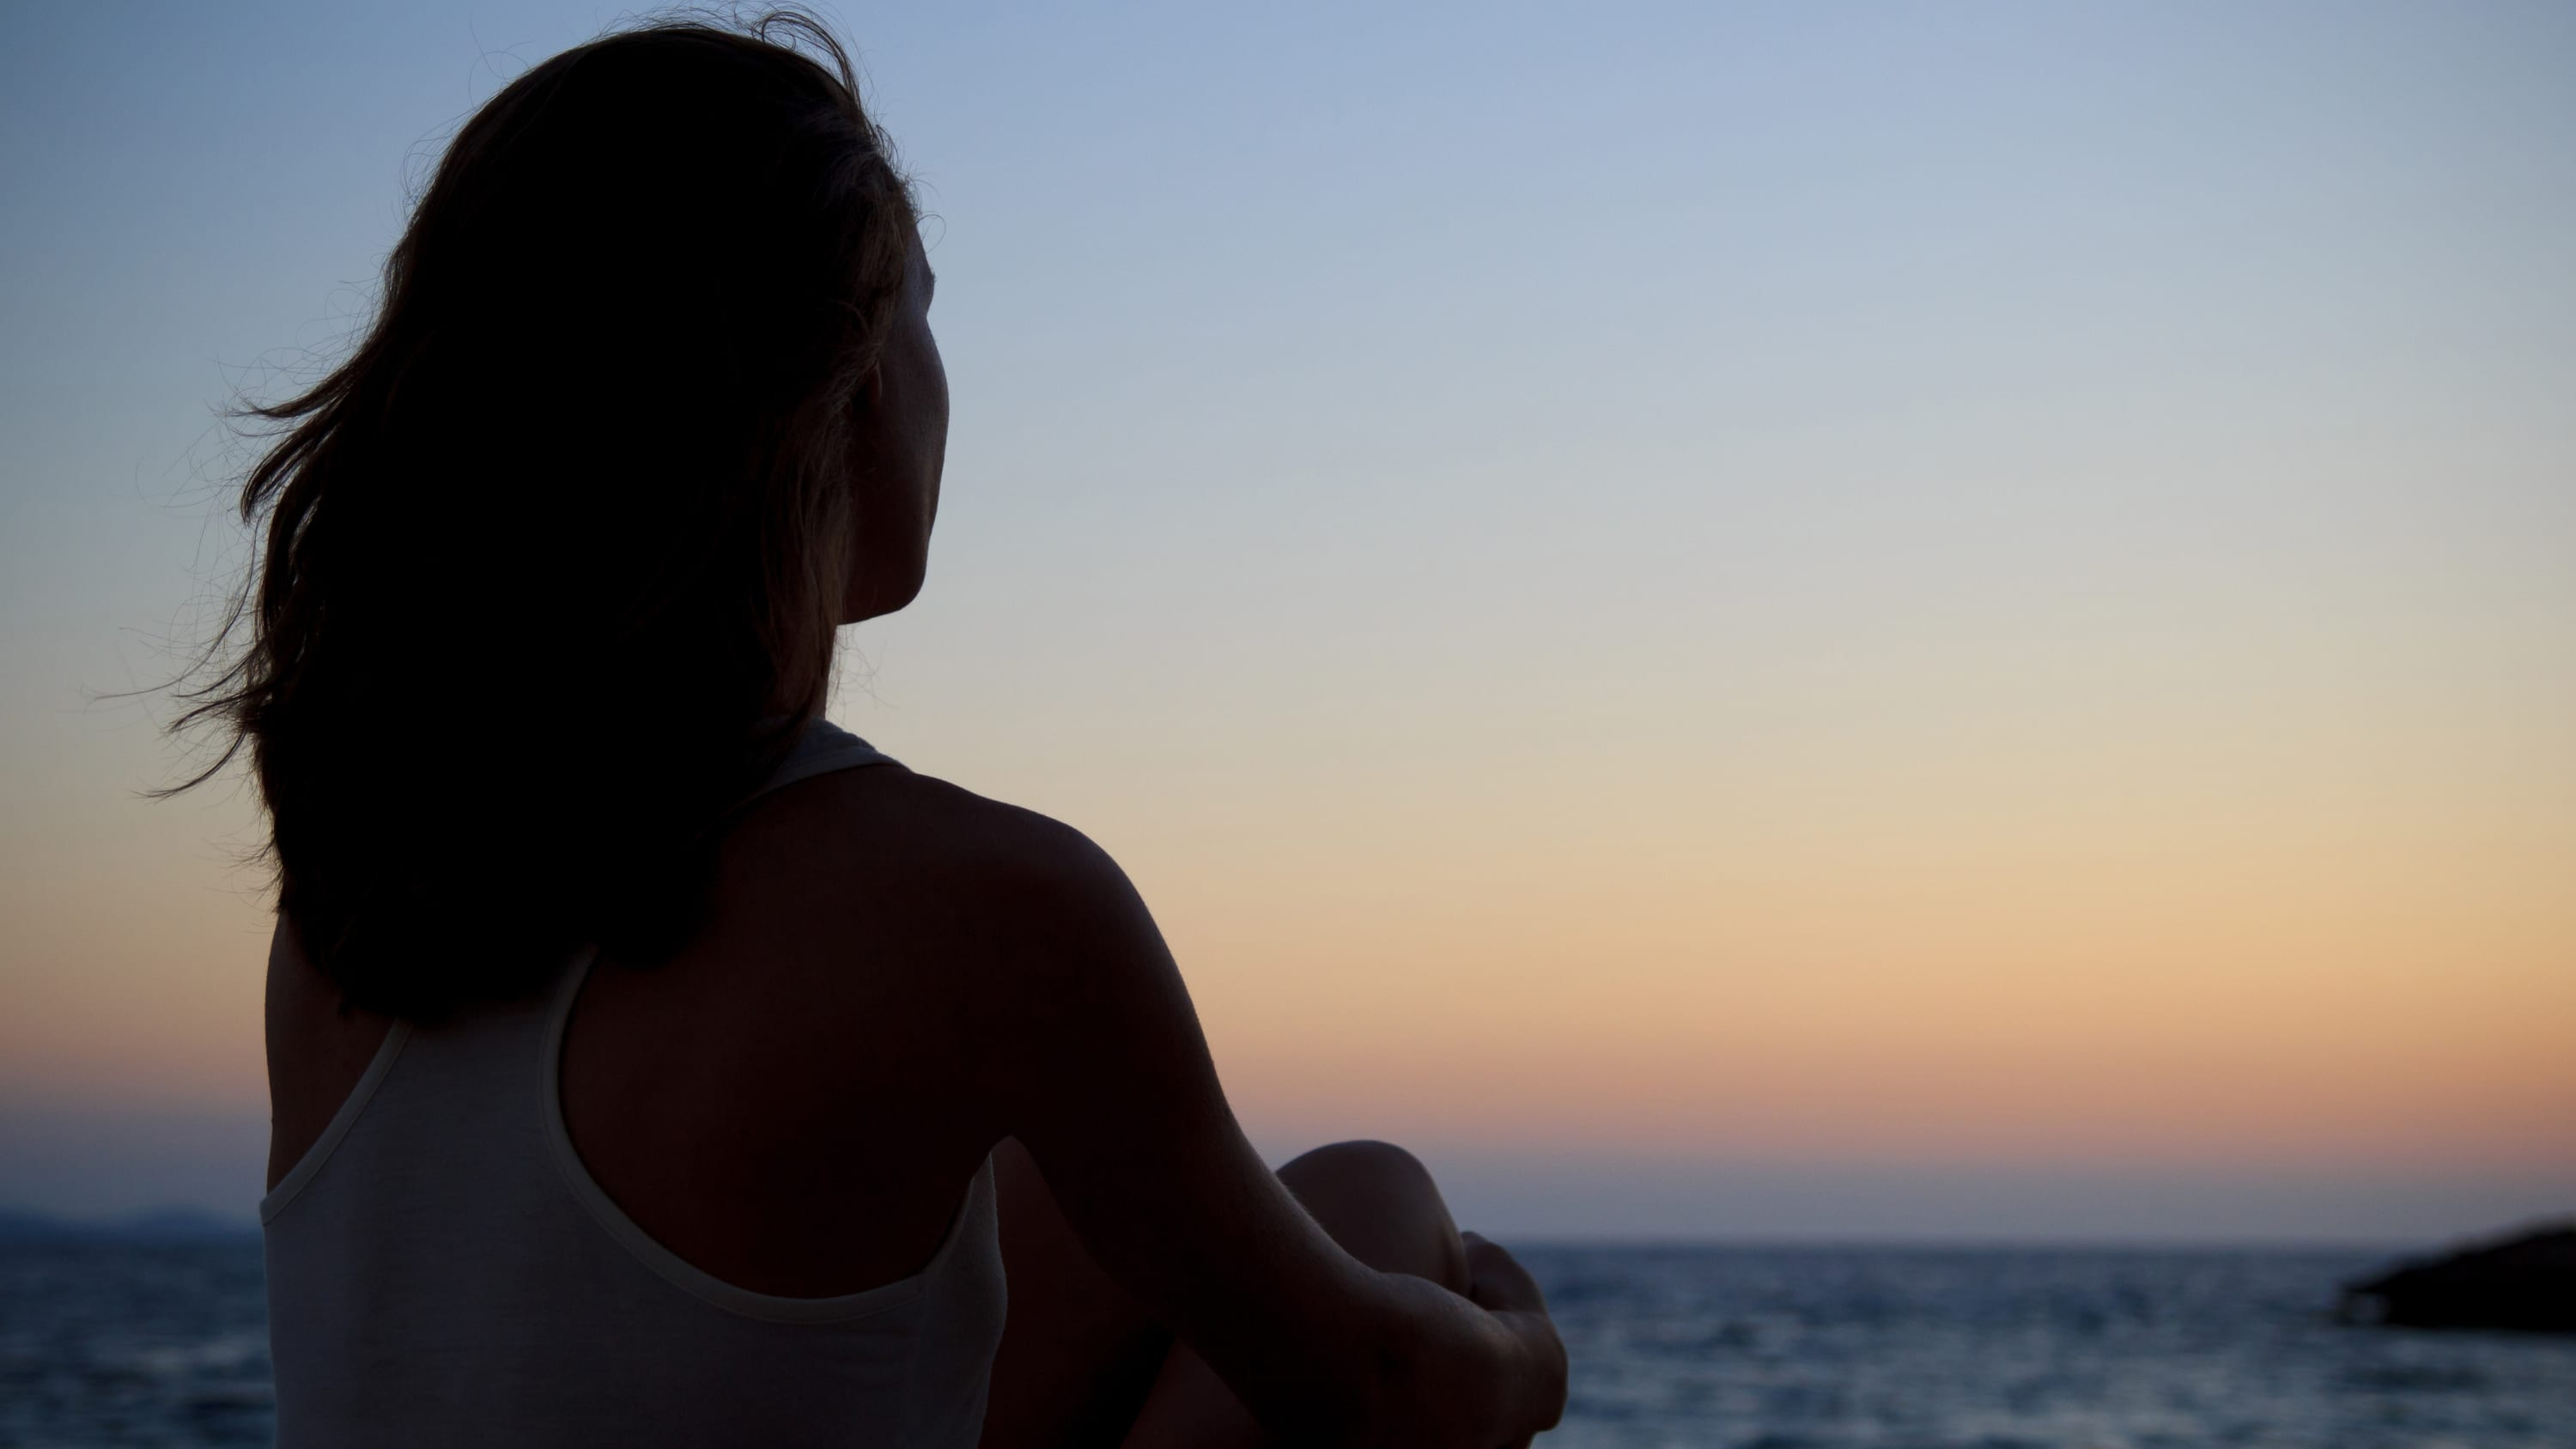 A woman with breast cancer with back to the audience, looking into sunset.